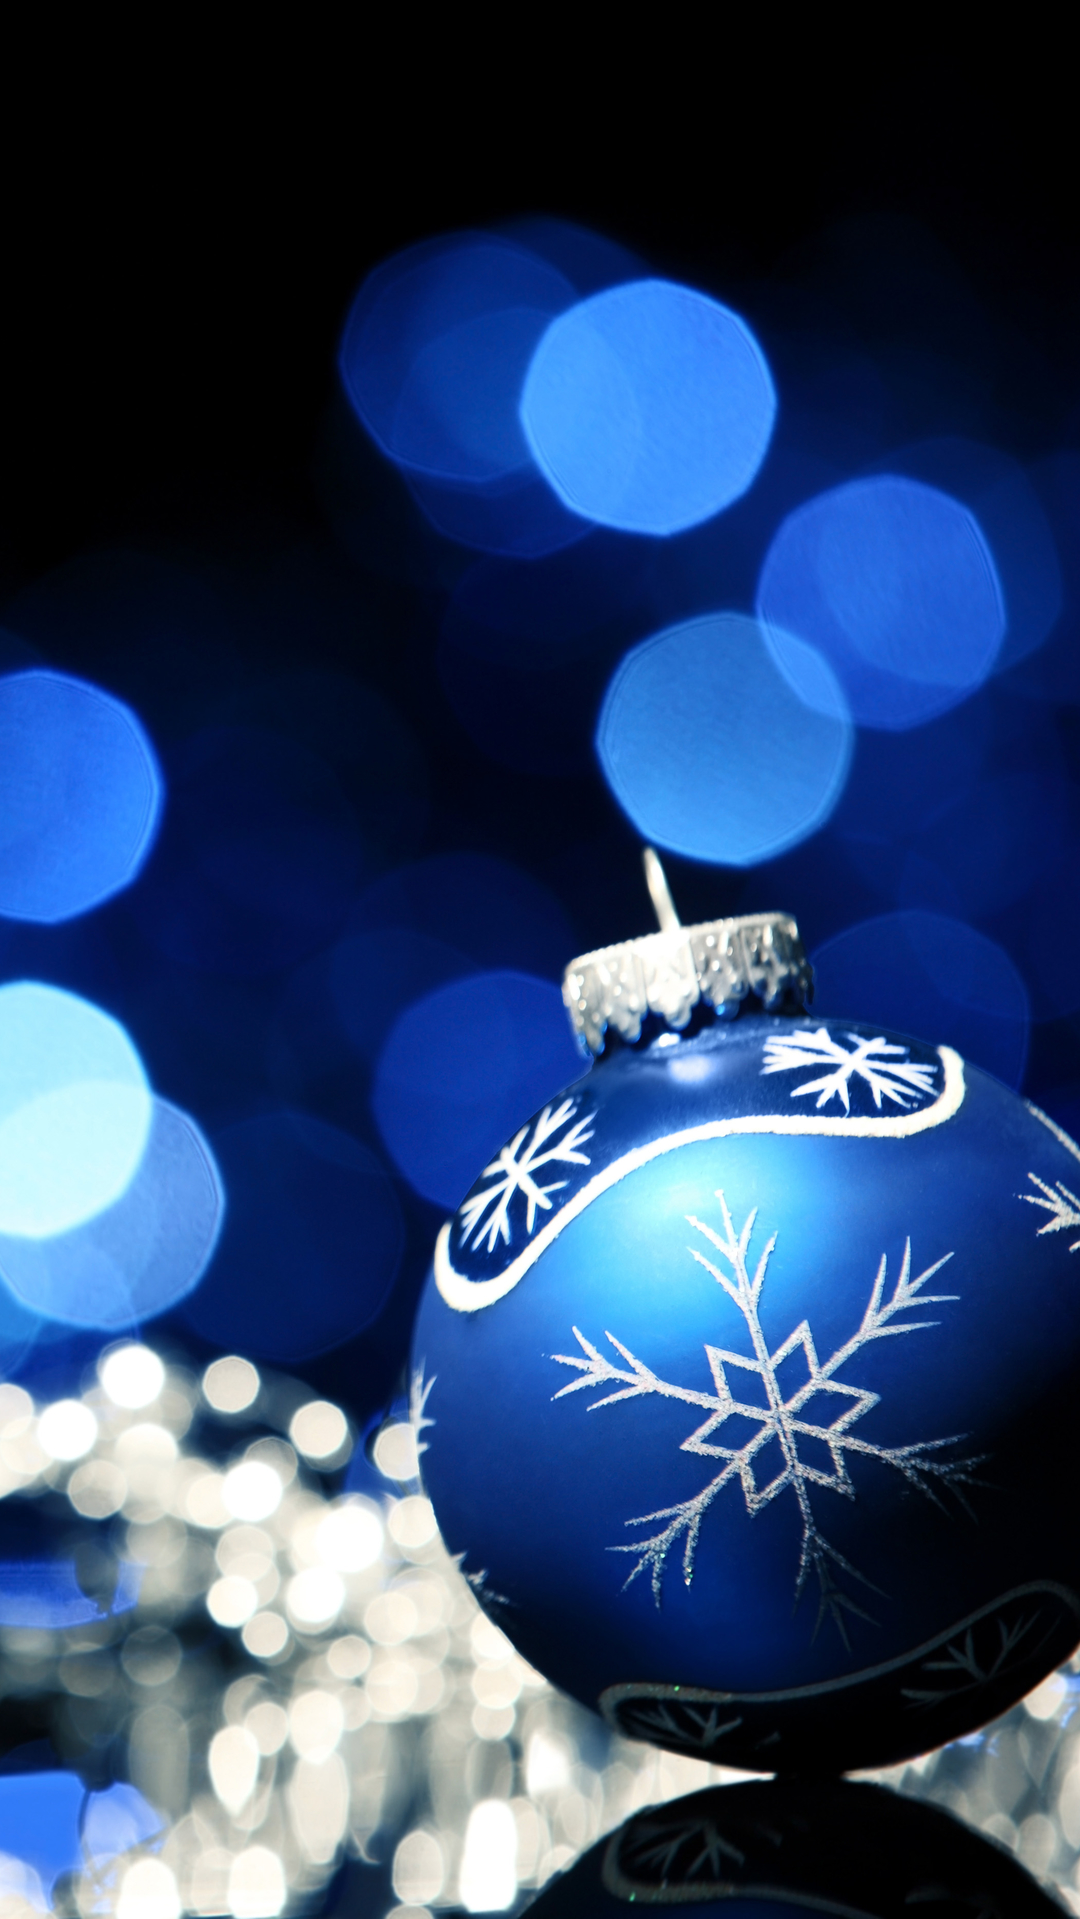 Merry Christmas And Happy New Year 2015 05 Iphone 6 6 Plus And